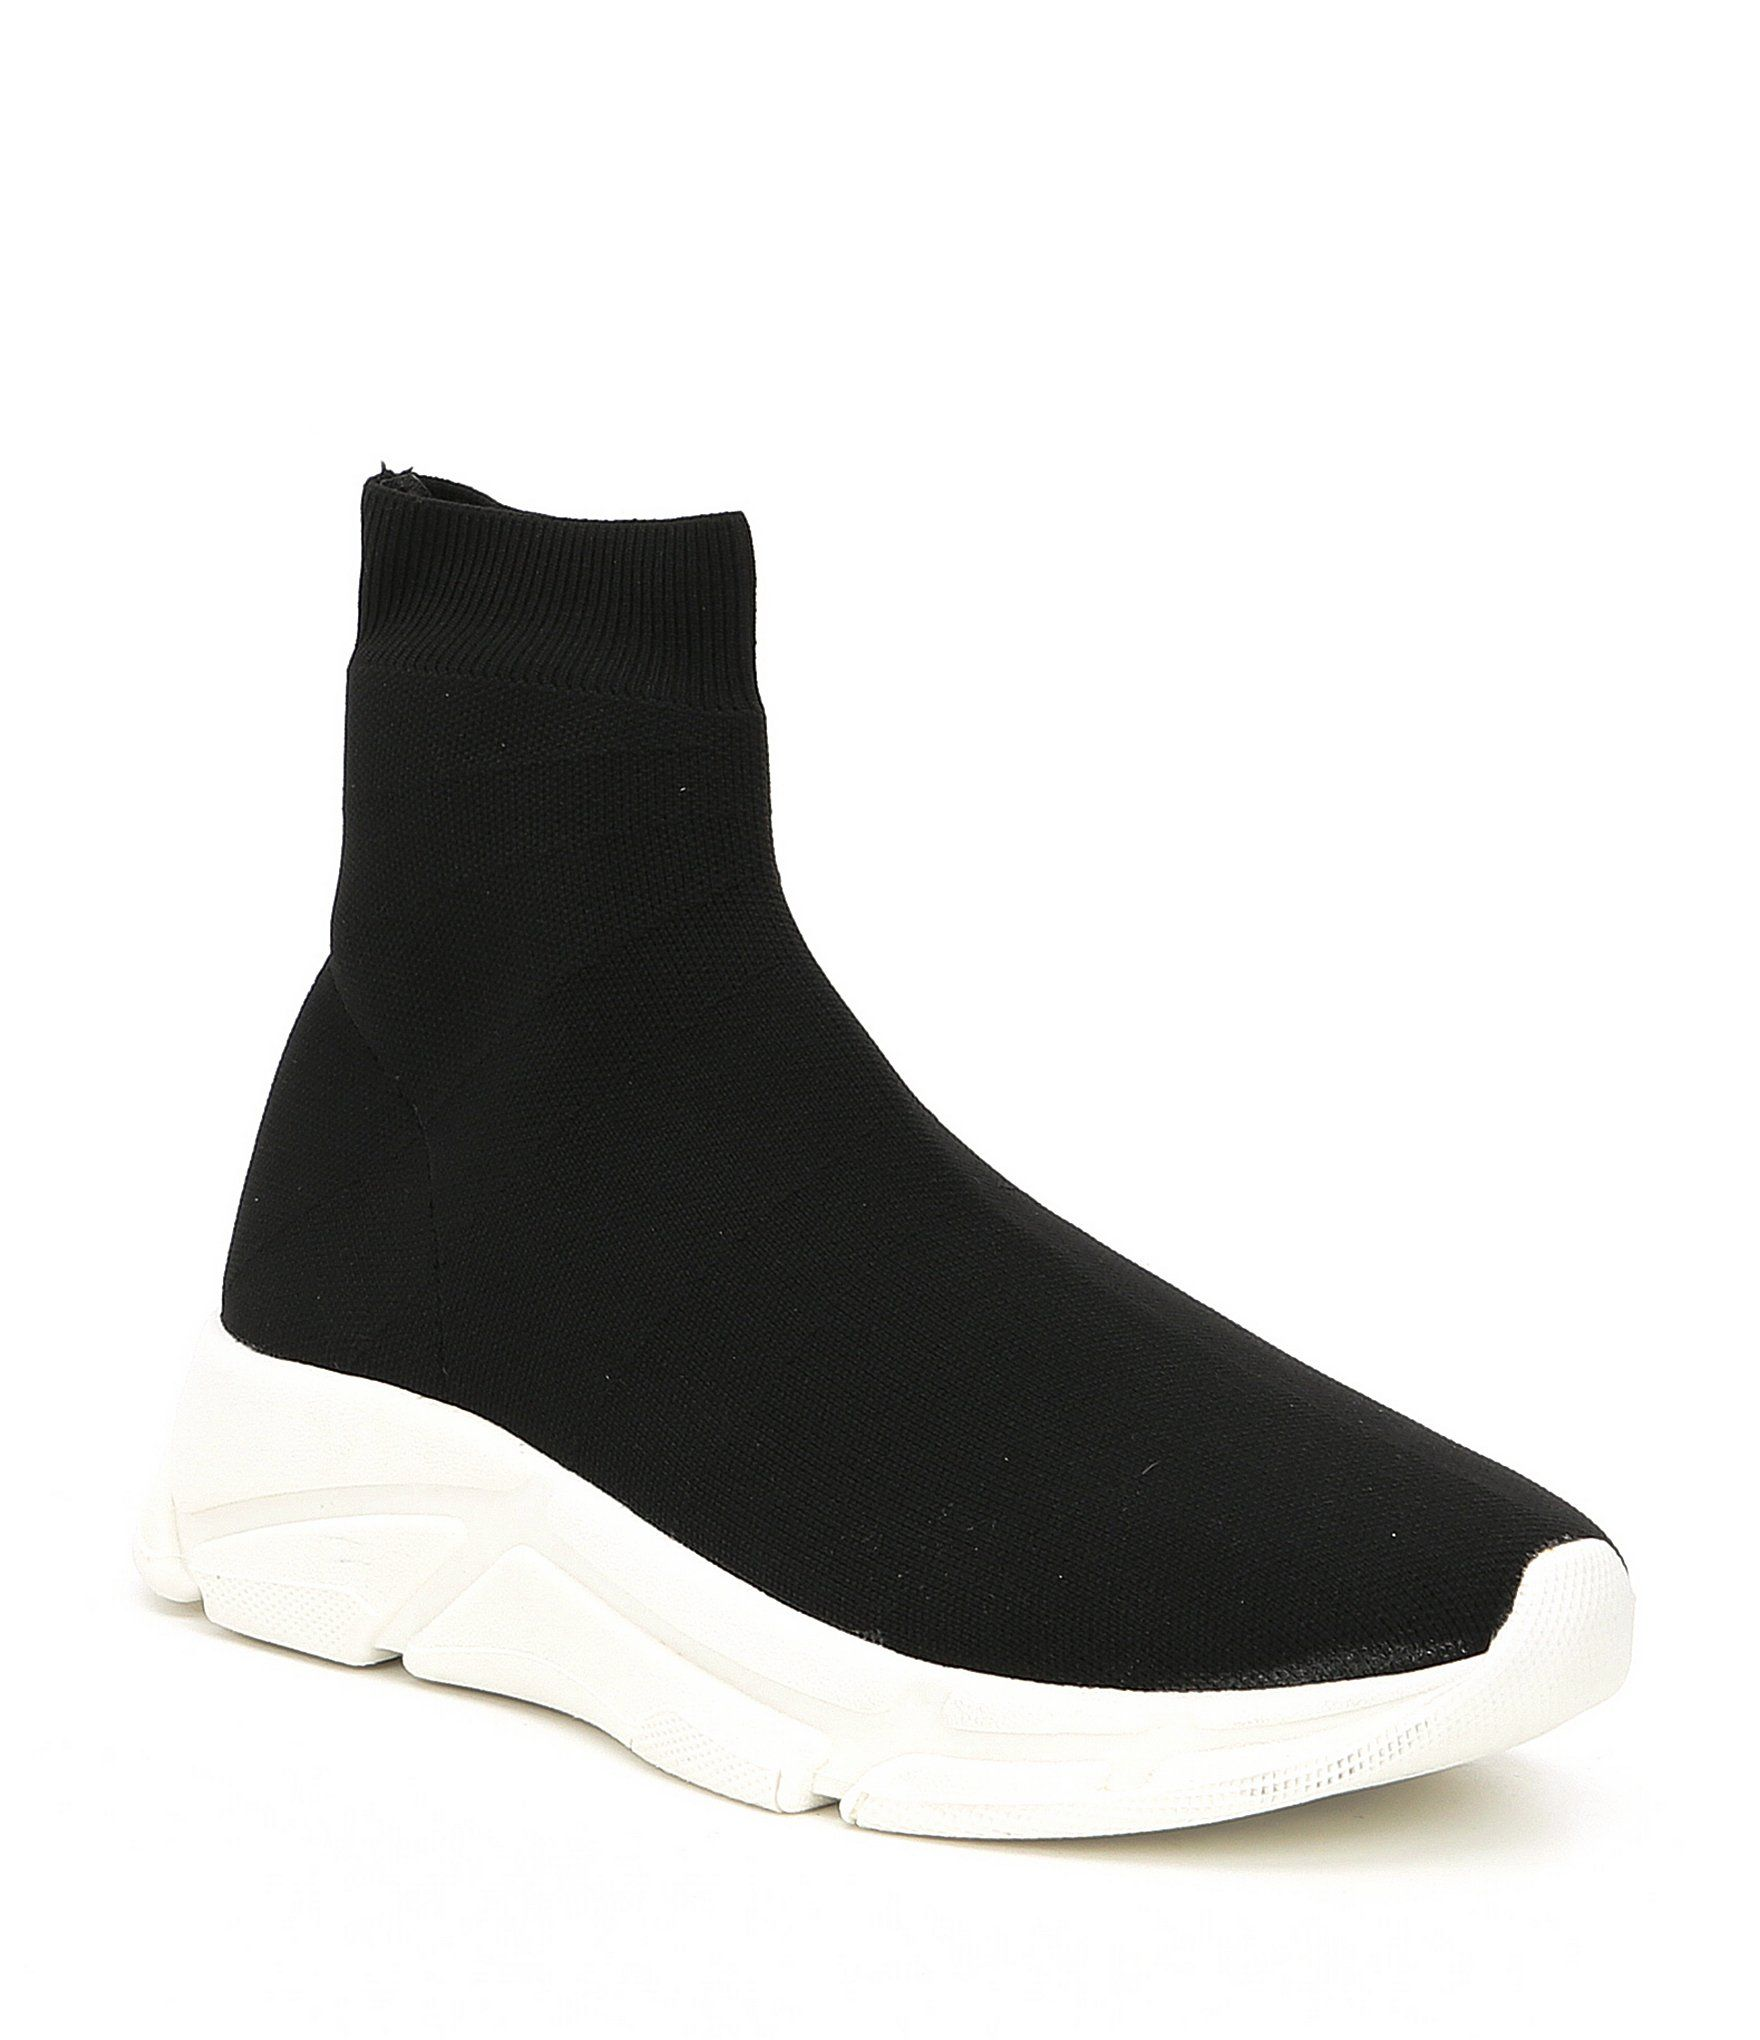 a8078313ef9 Shop for Steve Madden Bitten Knit Sneakers at Dillards.com. Visit ...